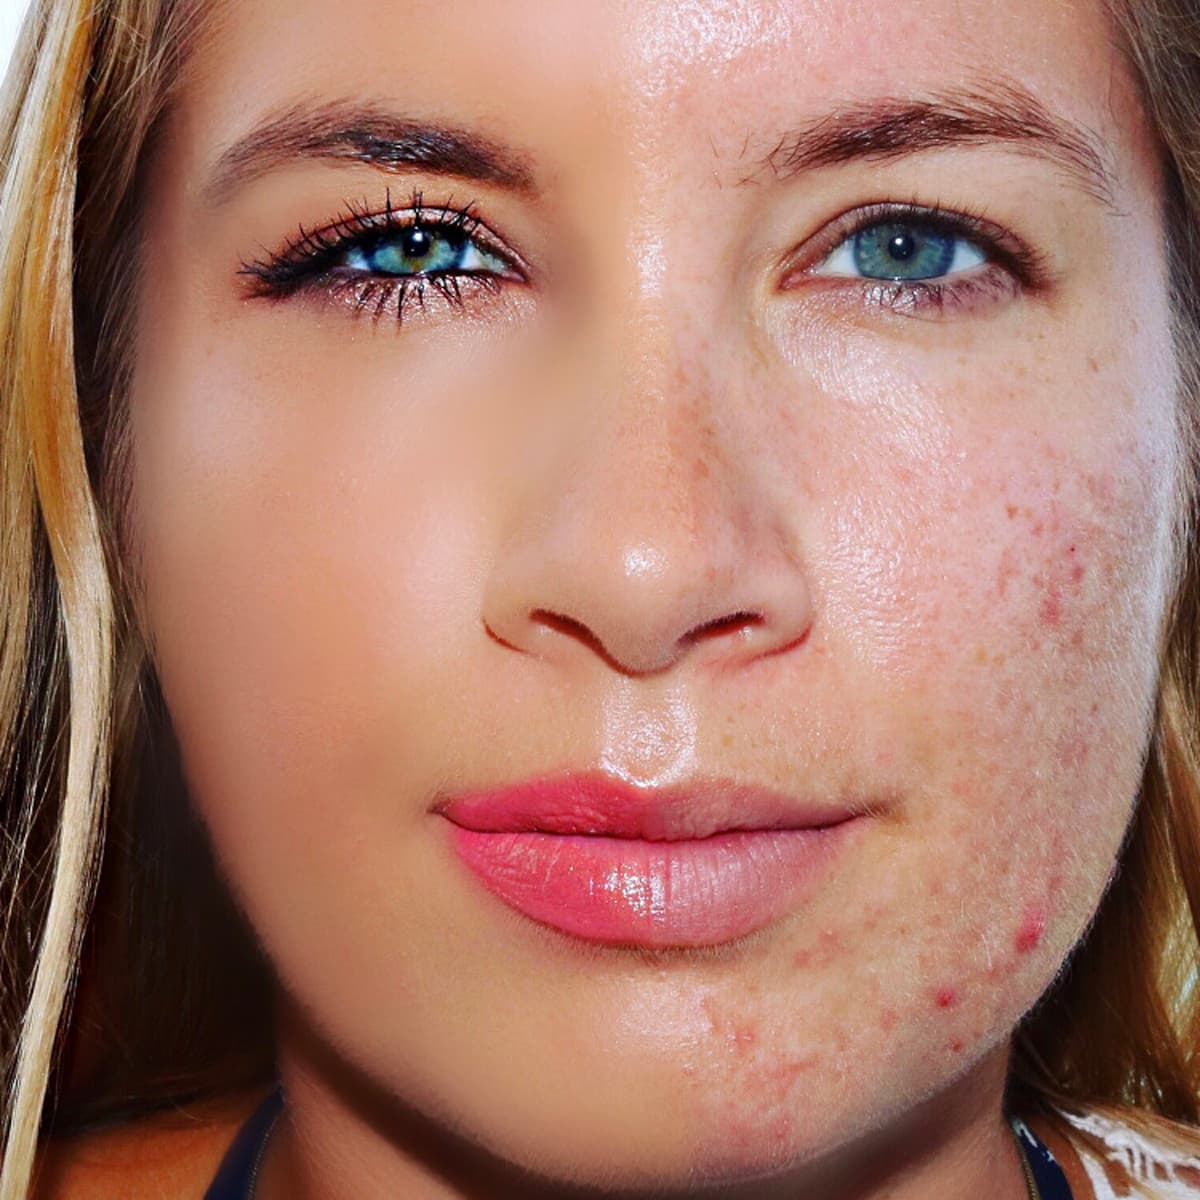 Tackling acne and insecurities   Virgin